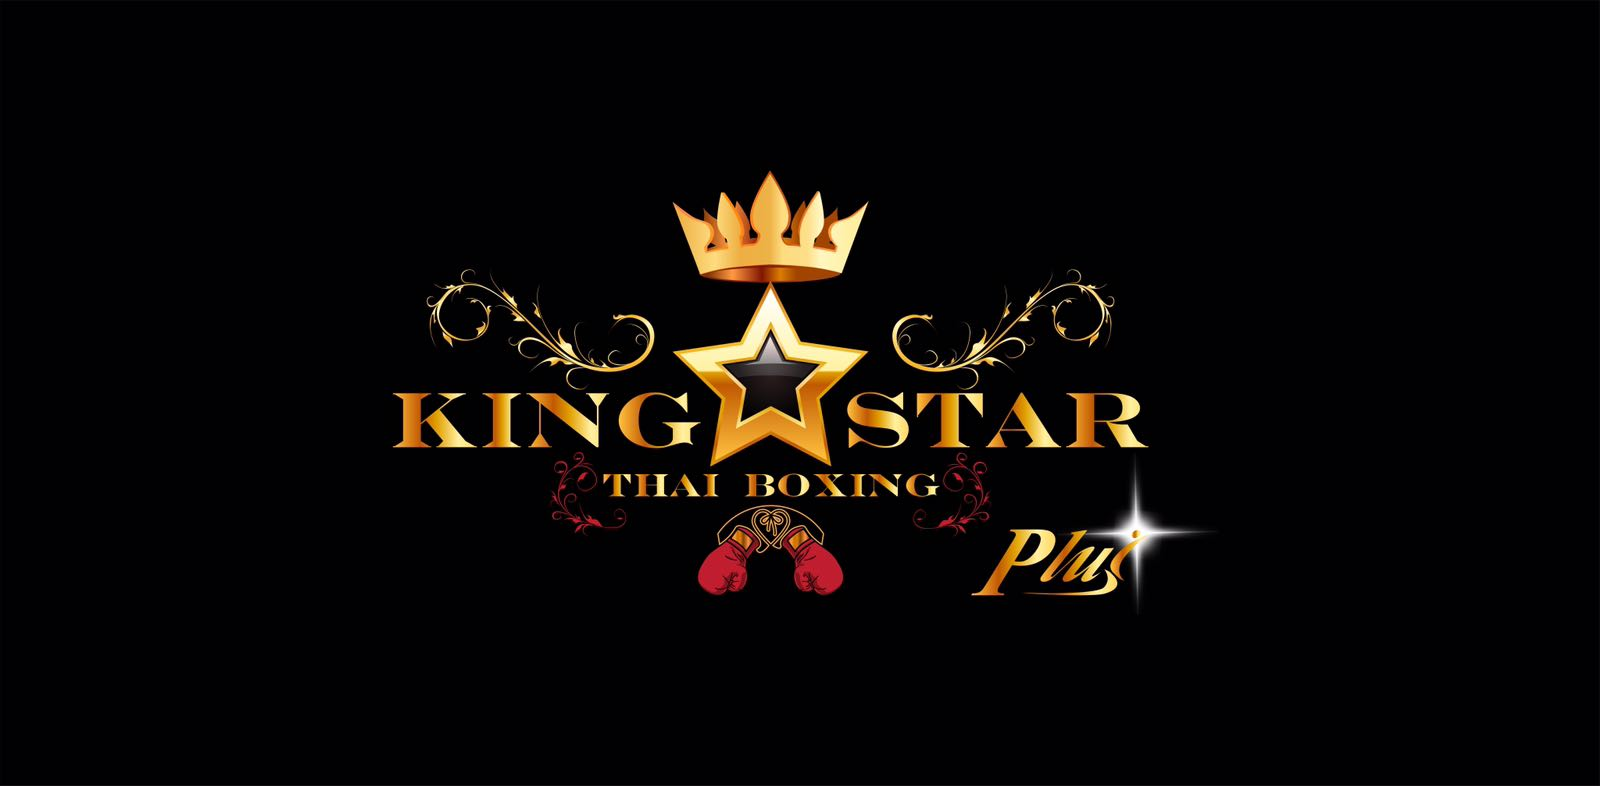 KING STAR PLUS FITNESS商標